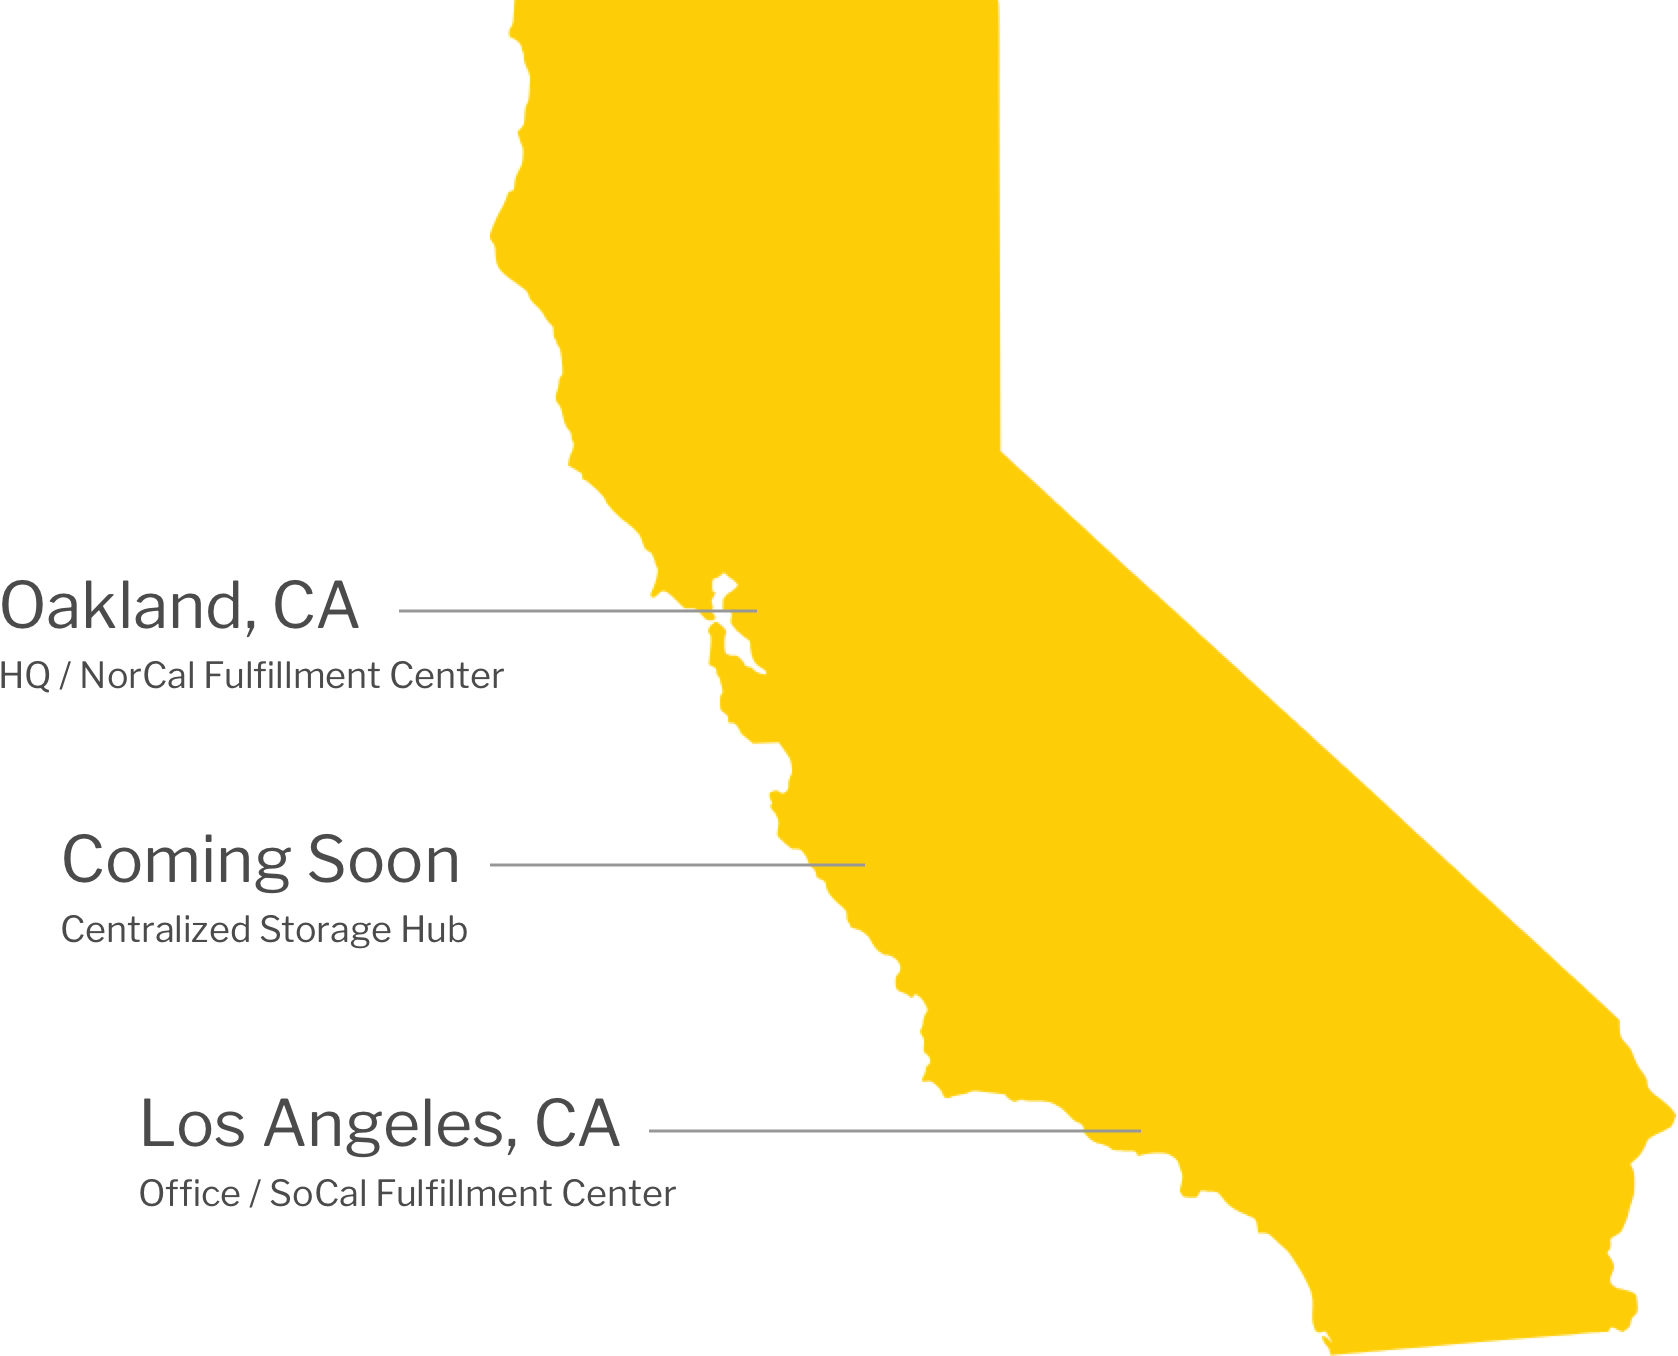 Nabis locations in Oakland, CA and Los Angeles, CA. A centalized storage hub is coming soon.